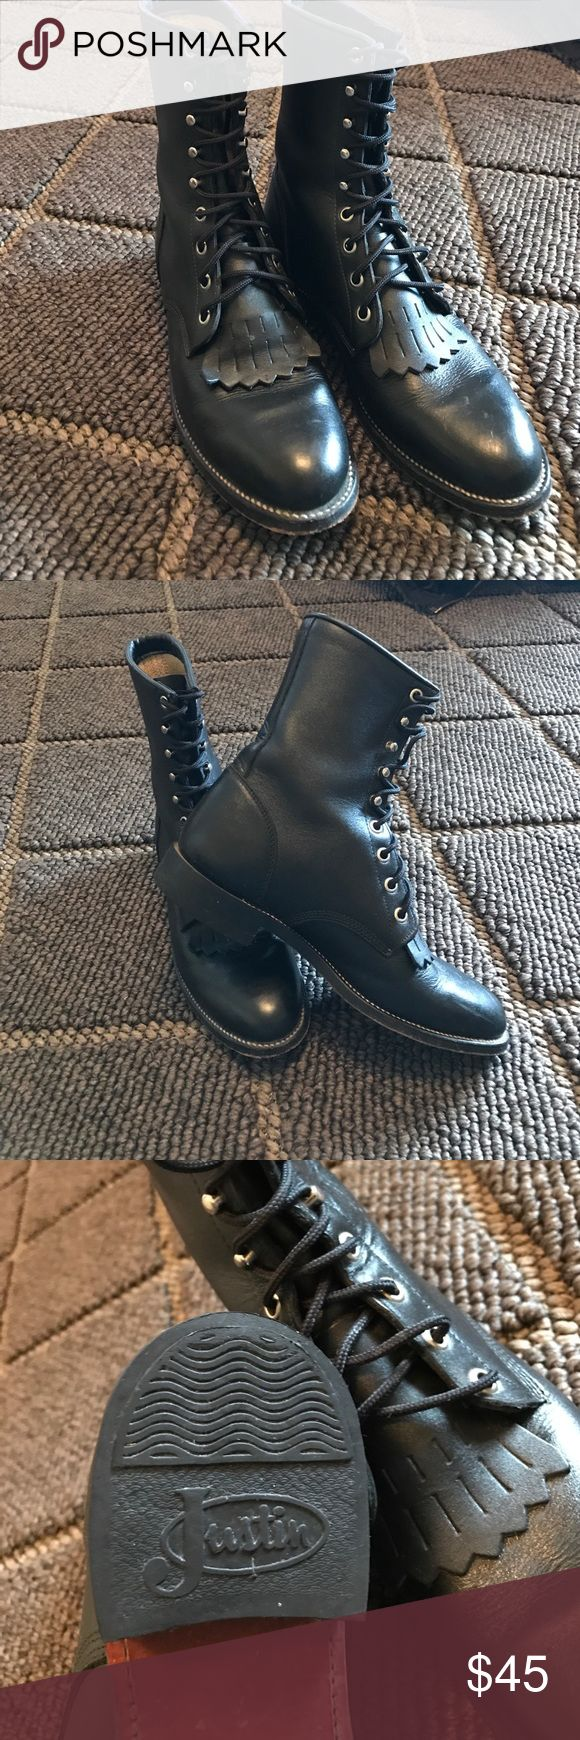 Justin Roper Boots Justin Roper Boots. Removable toe fringe. In excellent condition. Size 7B Justin Boots Shoes Lace Up Boots